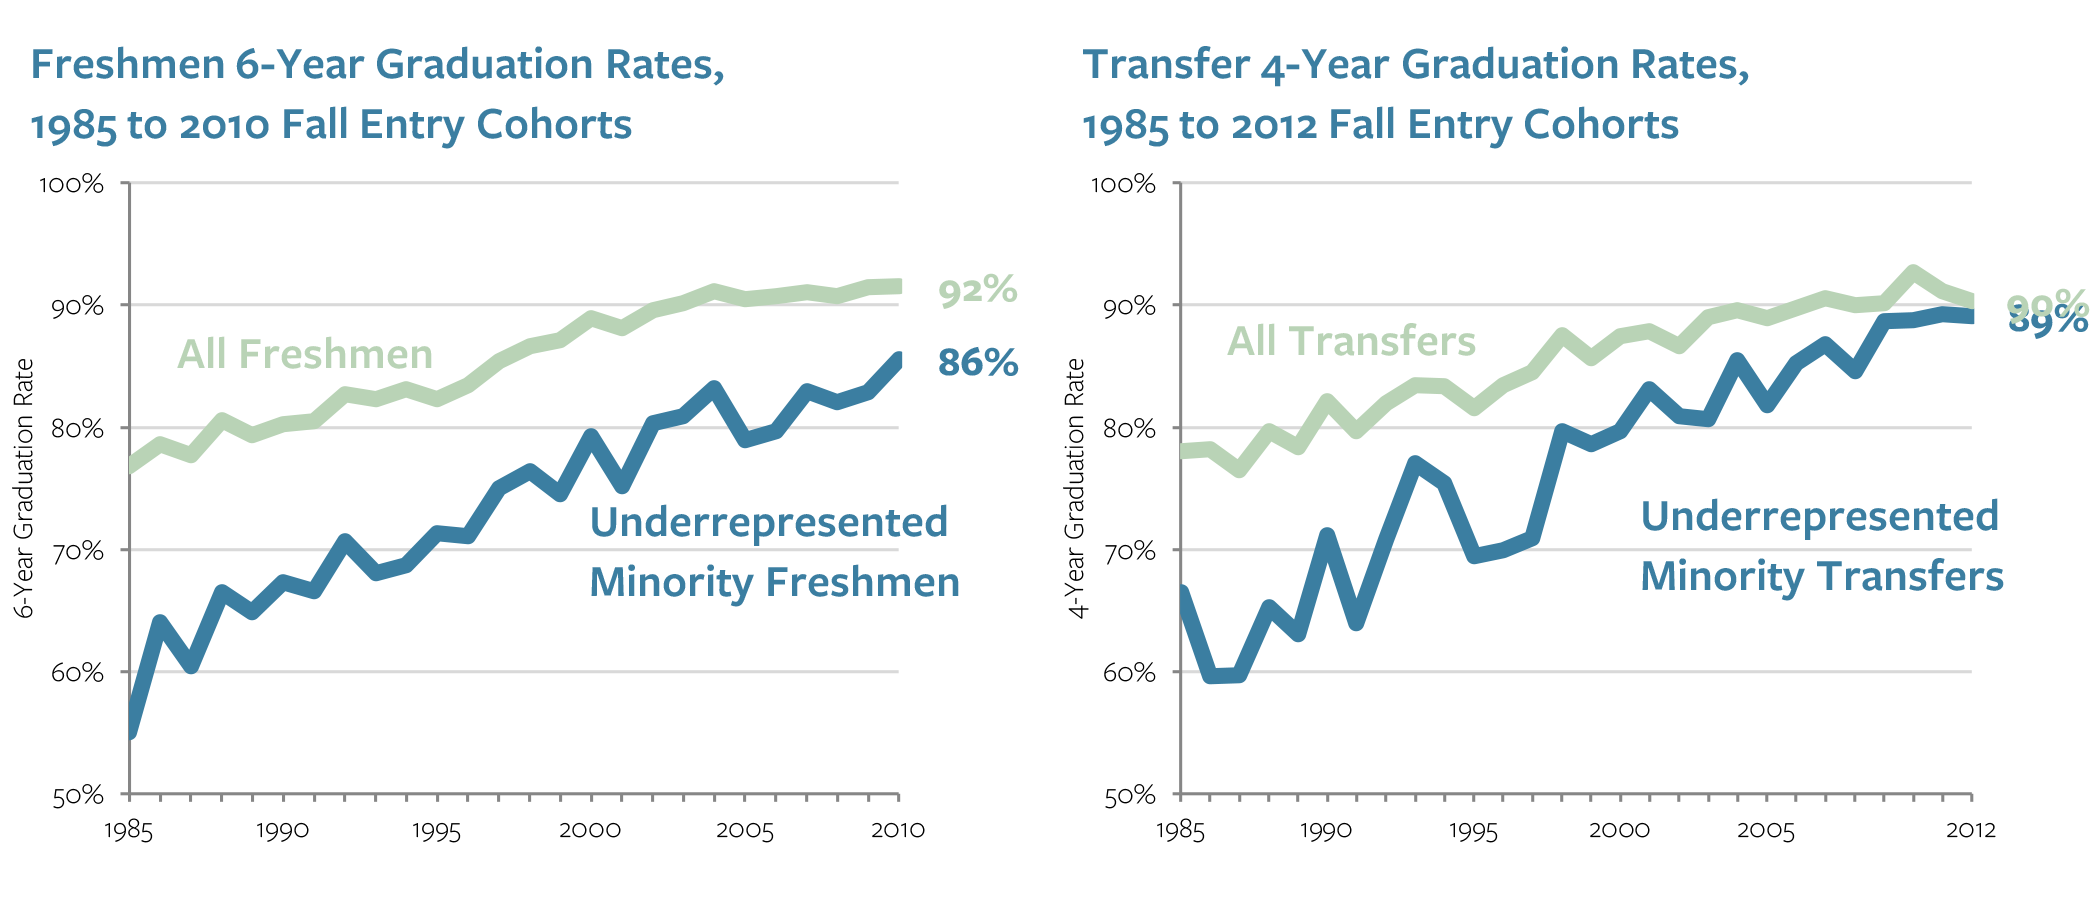 Freshmen and transfer graduation rates